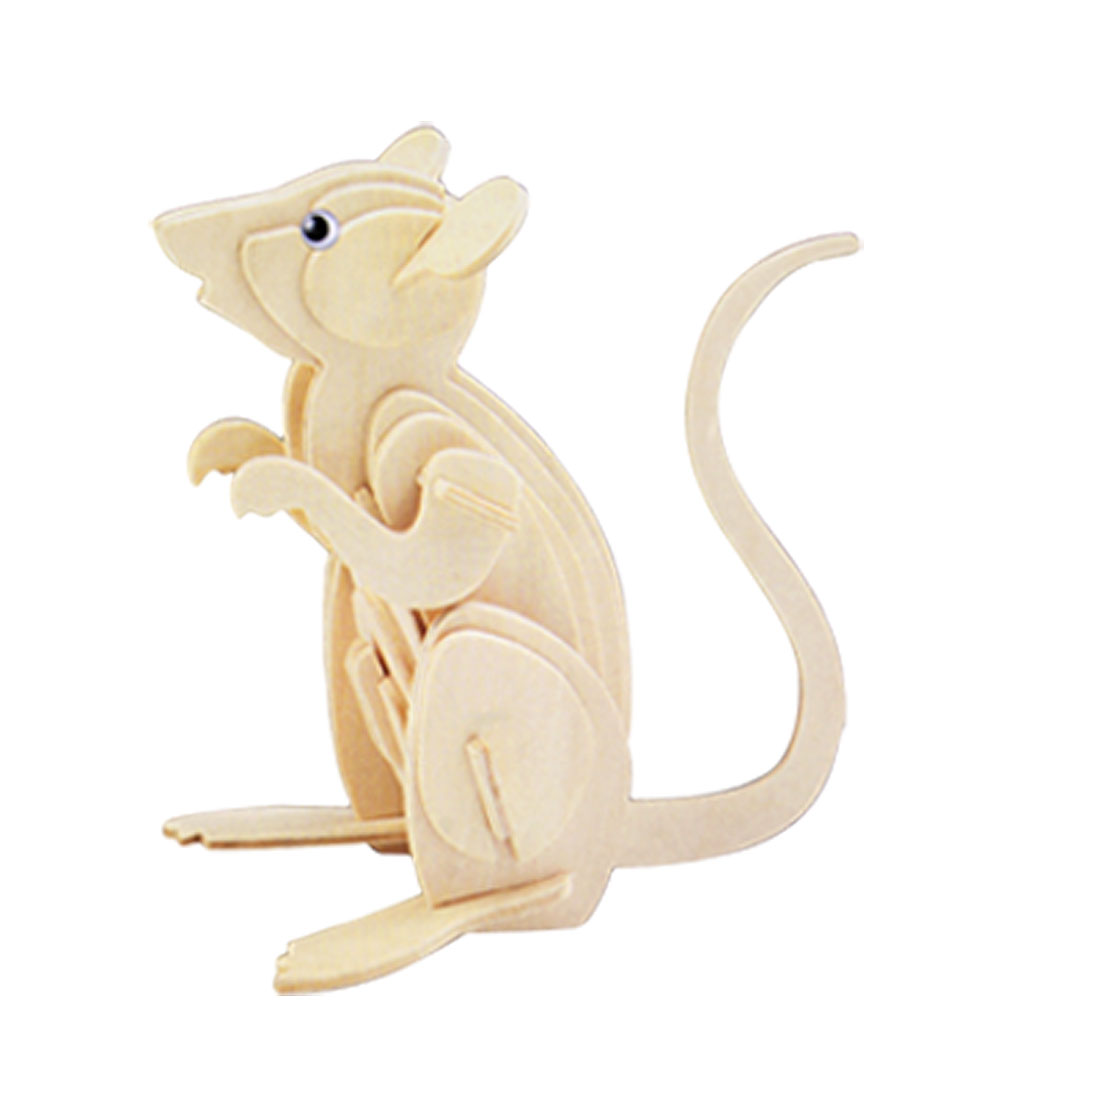 Woodcraft 3D Wooded Assemble Mouse Model DIY Puzzle Toy